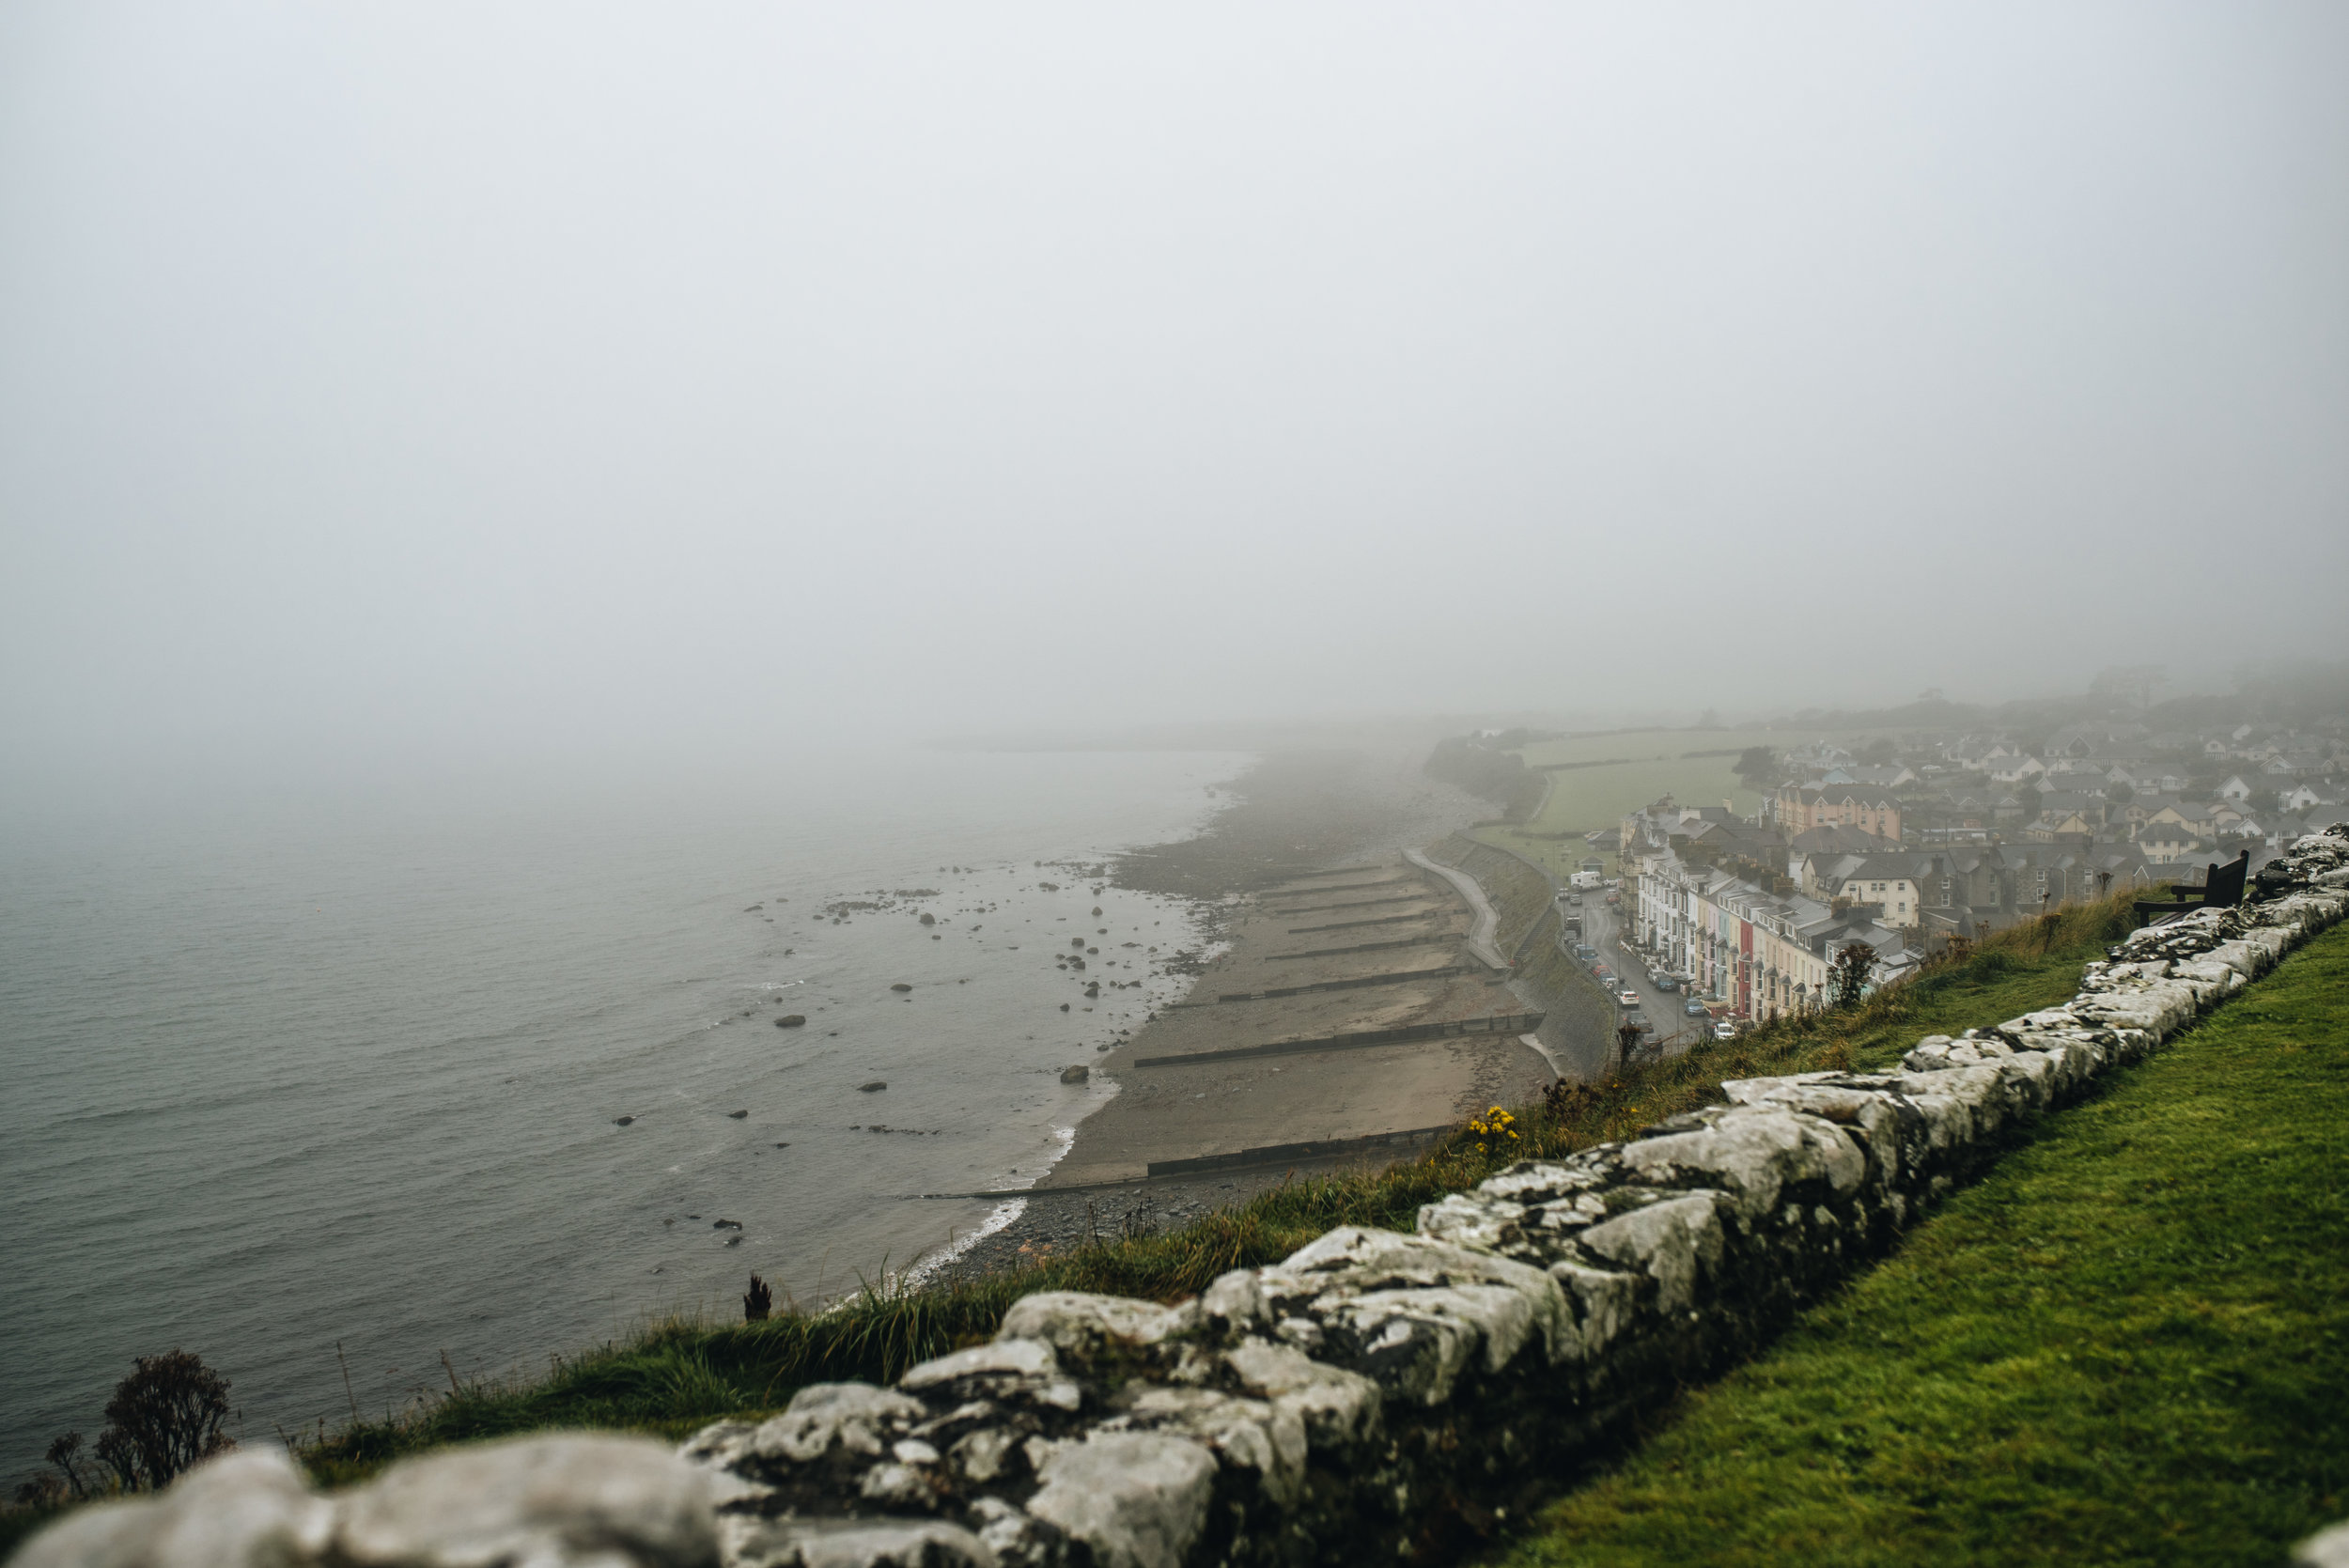 A holiday in North Wales - Llyn Peninsula - Criccieth